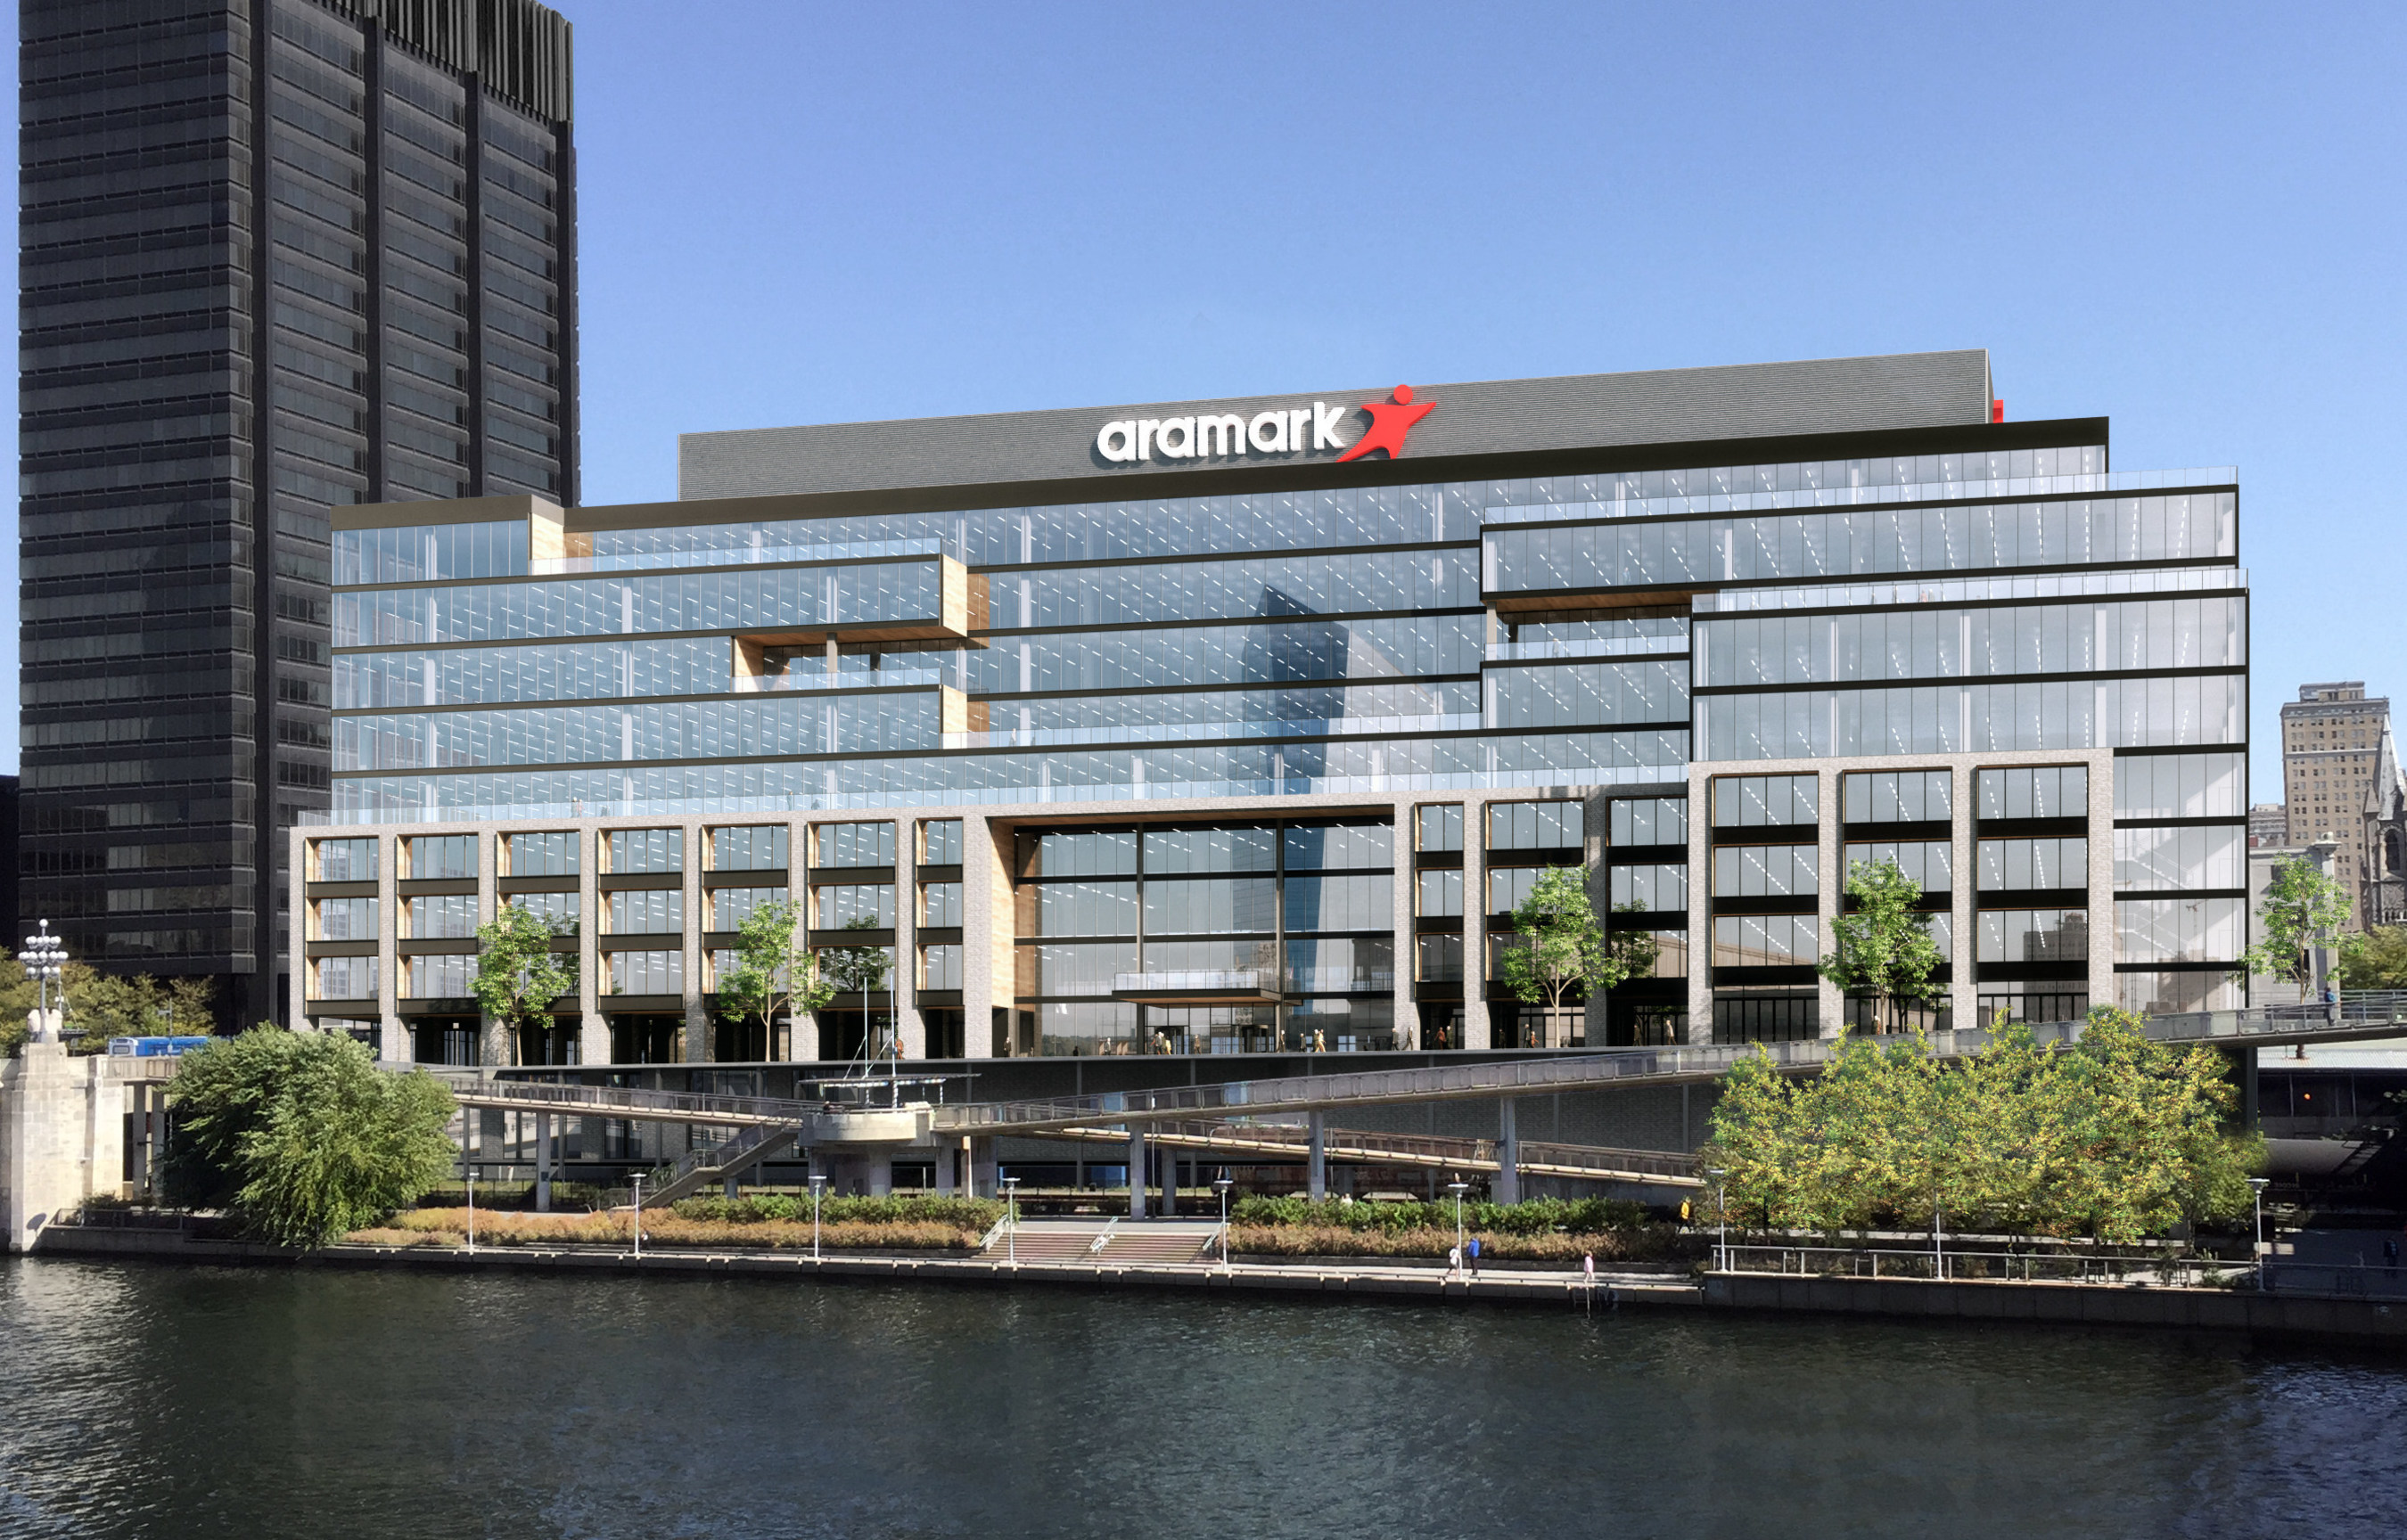 Aramark Announces Site of New Global Headquarters in